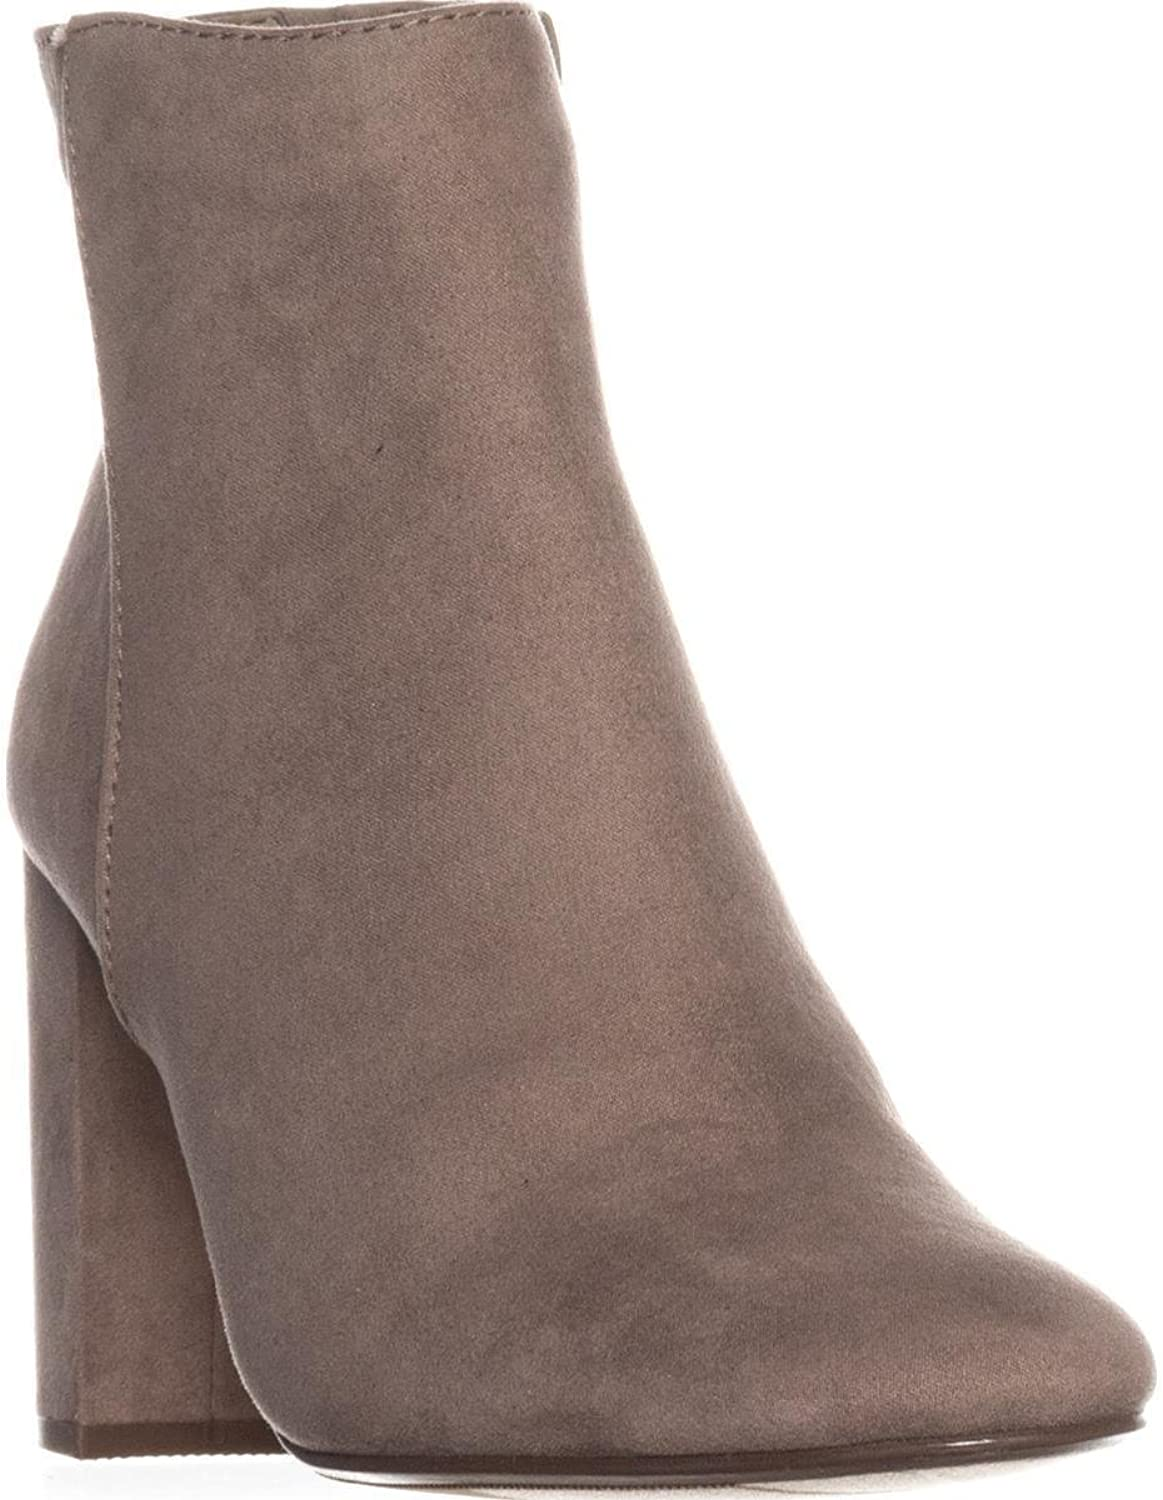 MG35 Cambrie Ankle stövlar, grå, 7 US